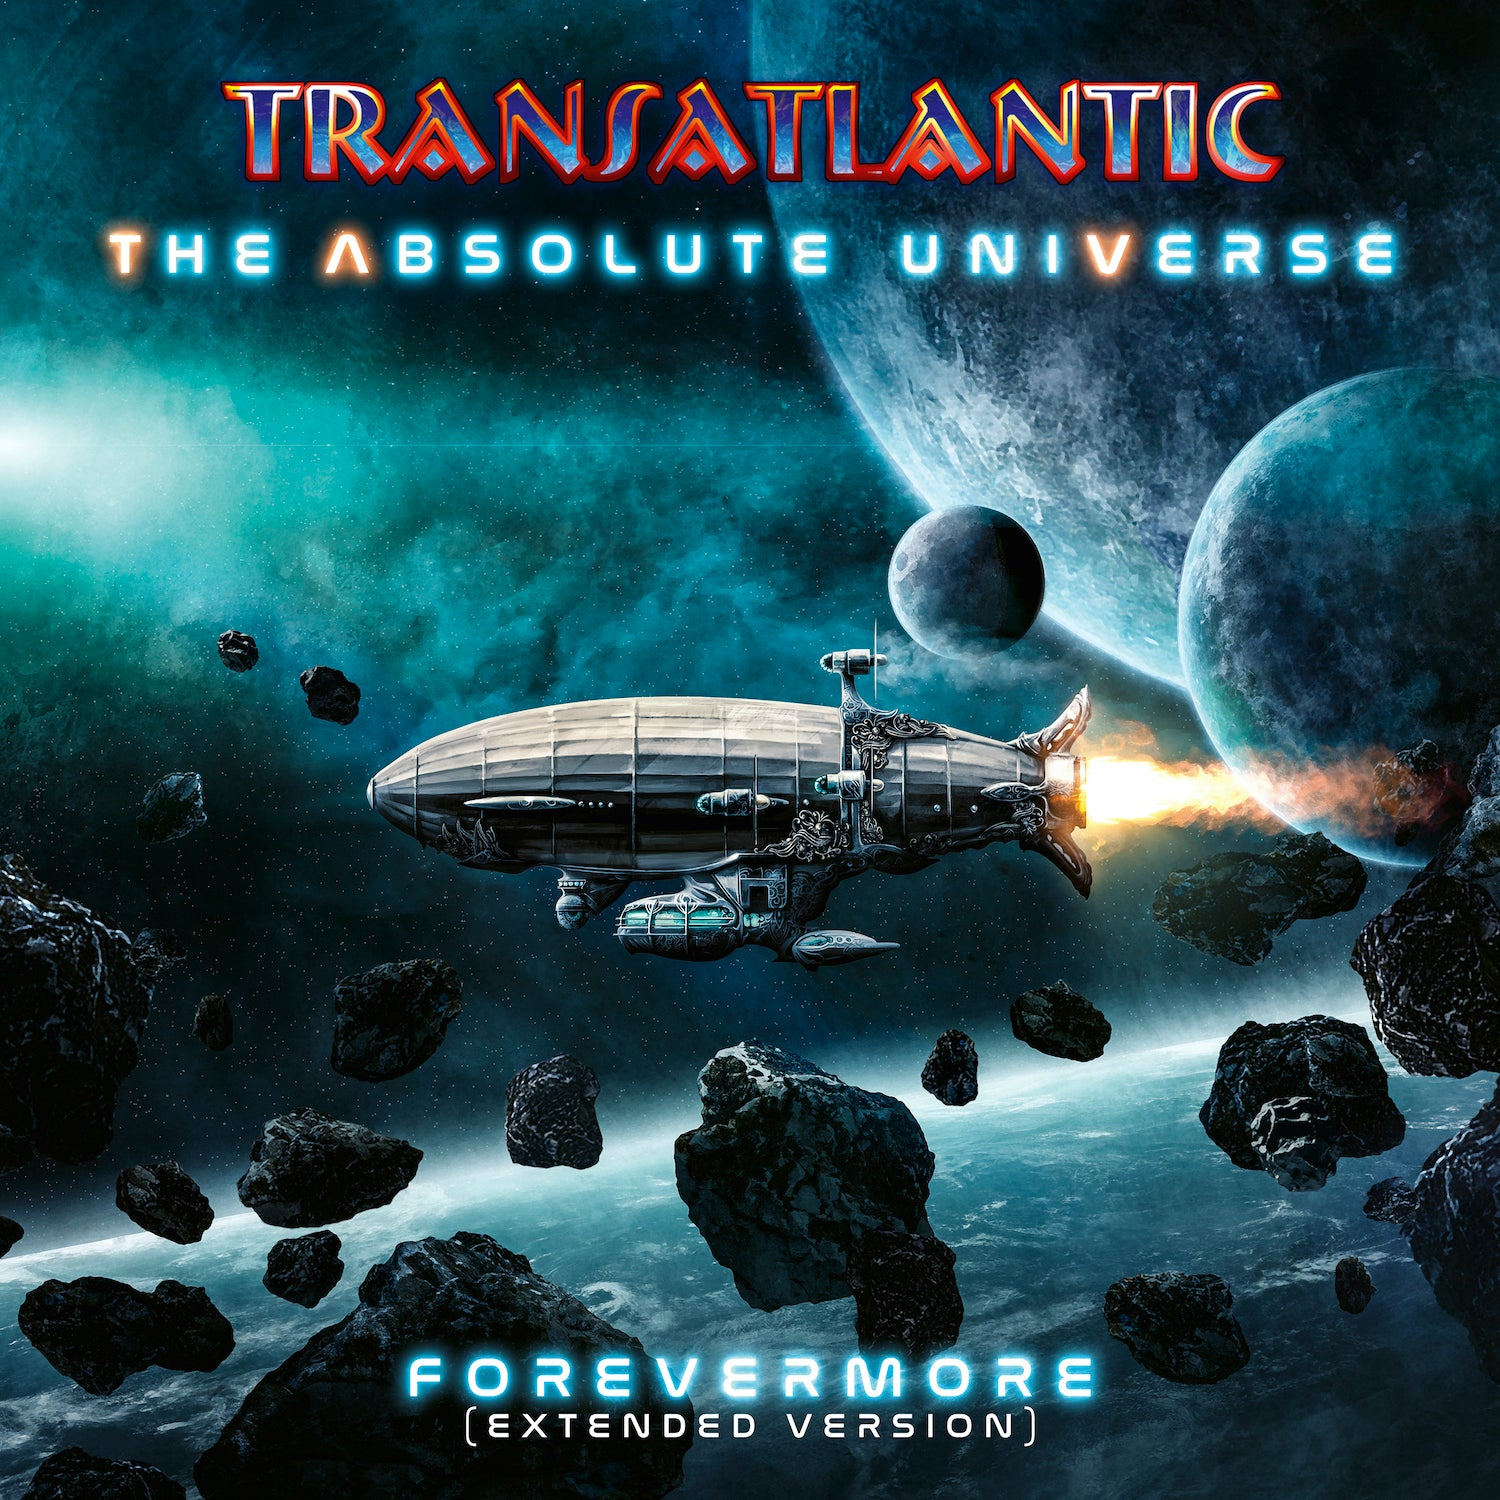 Transatlantic - The Absoulte Universe: Forevermore (Extended Version) (InsideOutMusic)